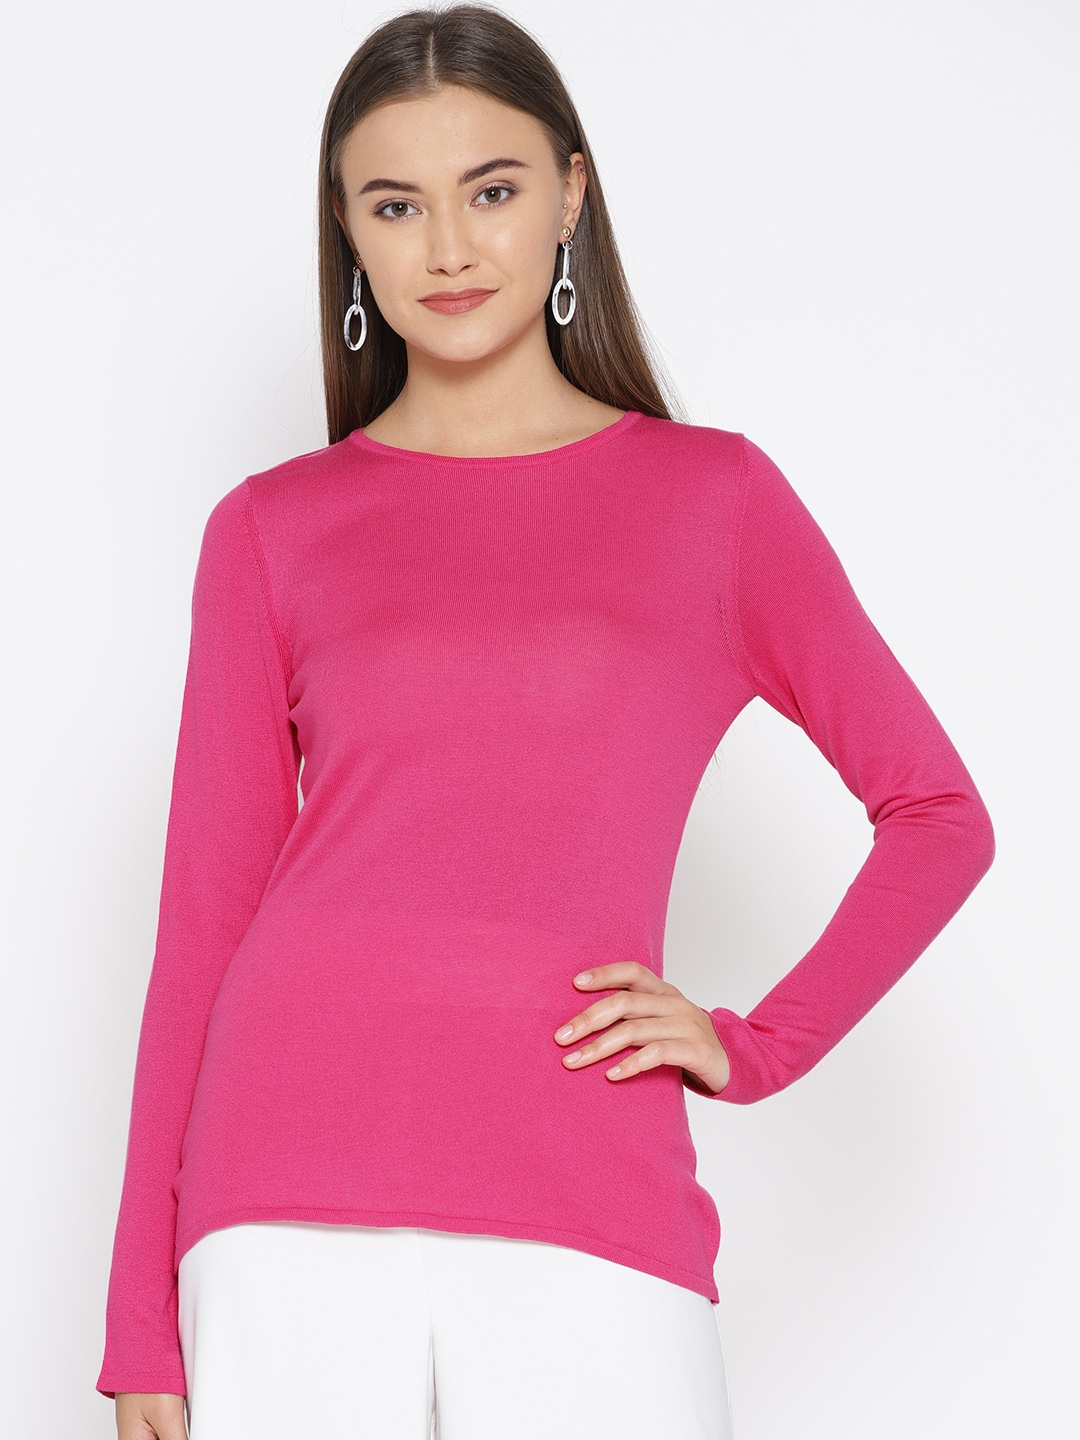 ae68d1811ed Sweaters for Women - Buy Womens Sweaters Online - Myntra